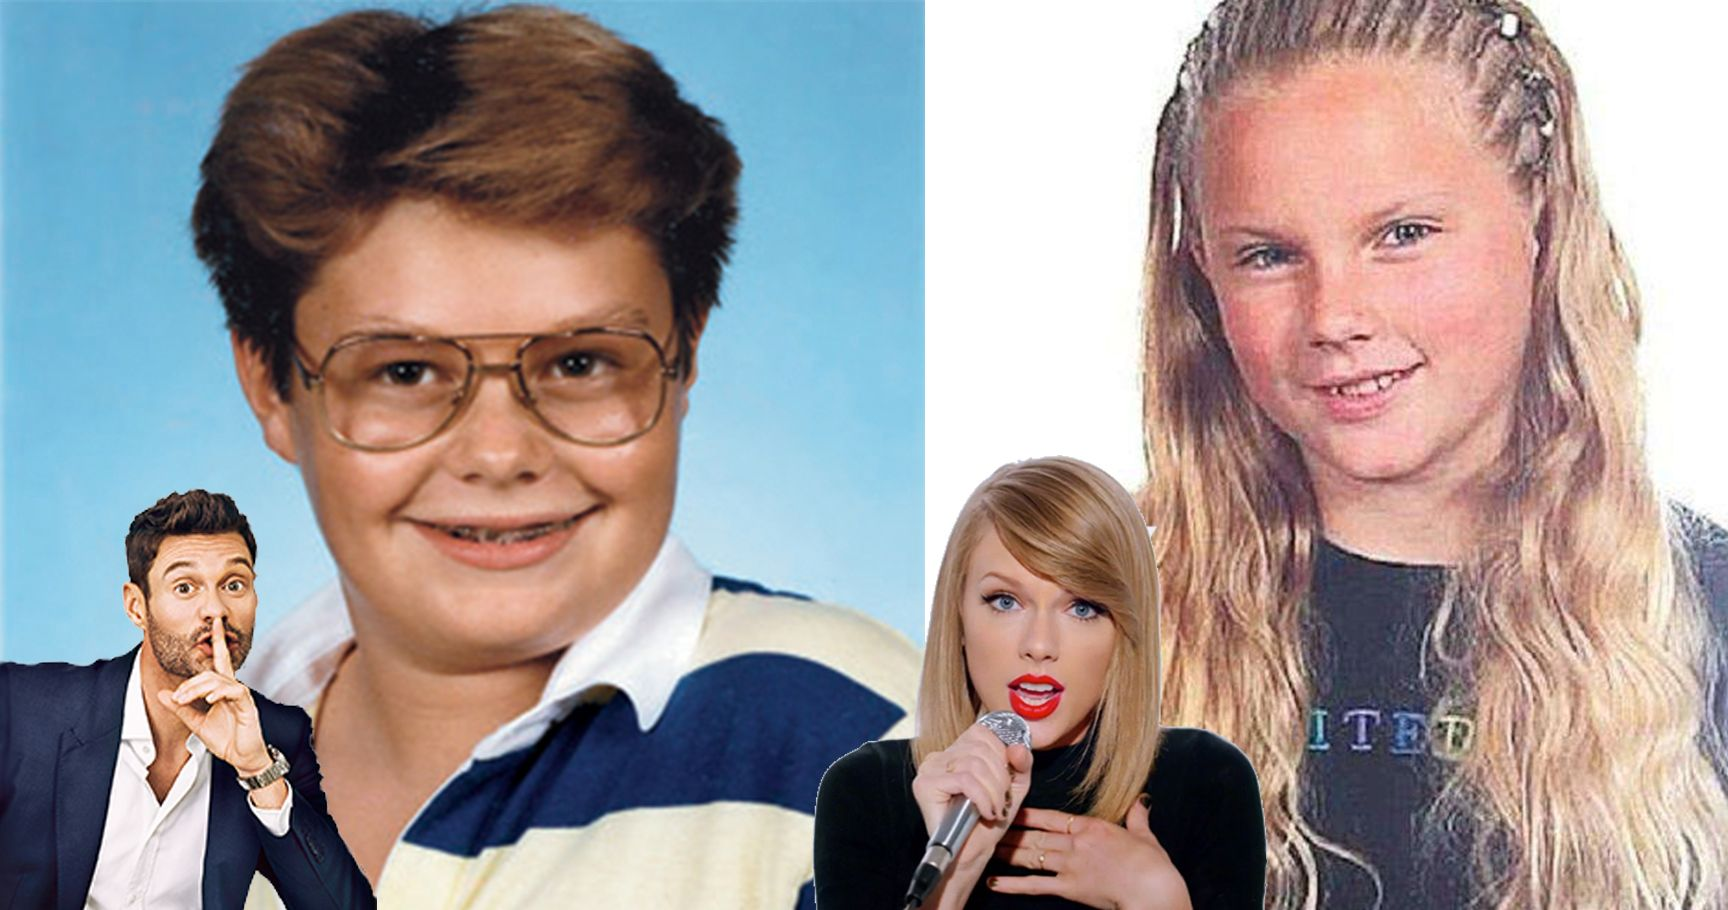 16 Jaw-Dropping Celebrity Yearbook Photos That Are Barely Recognizable